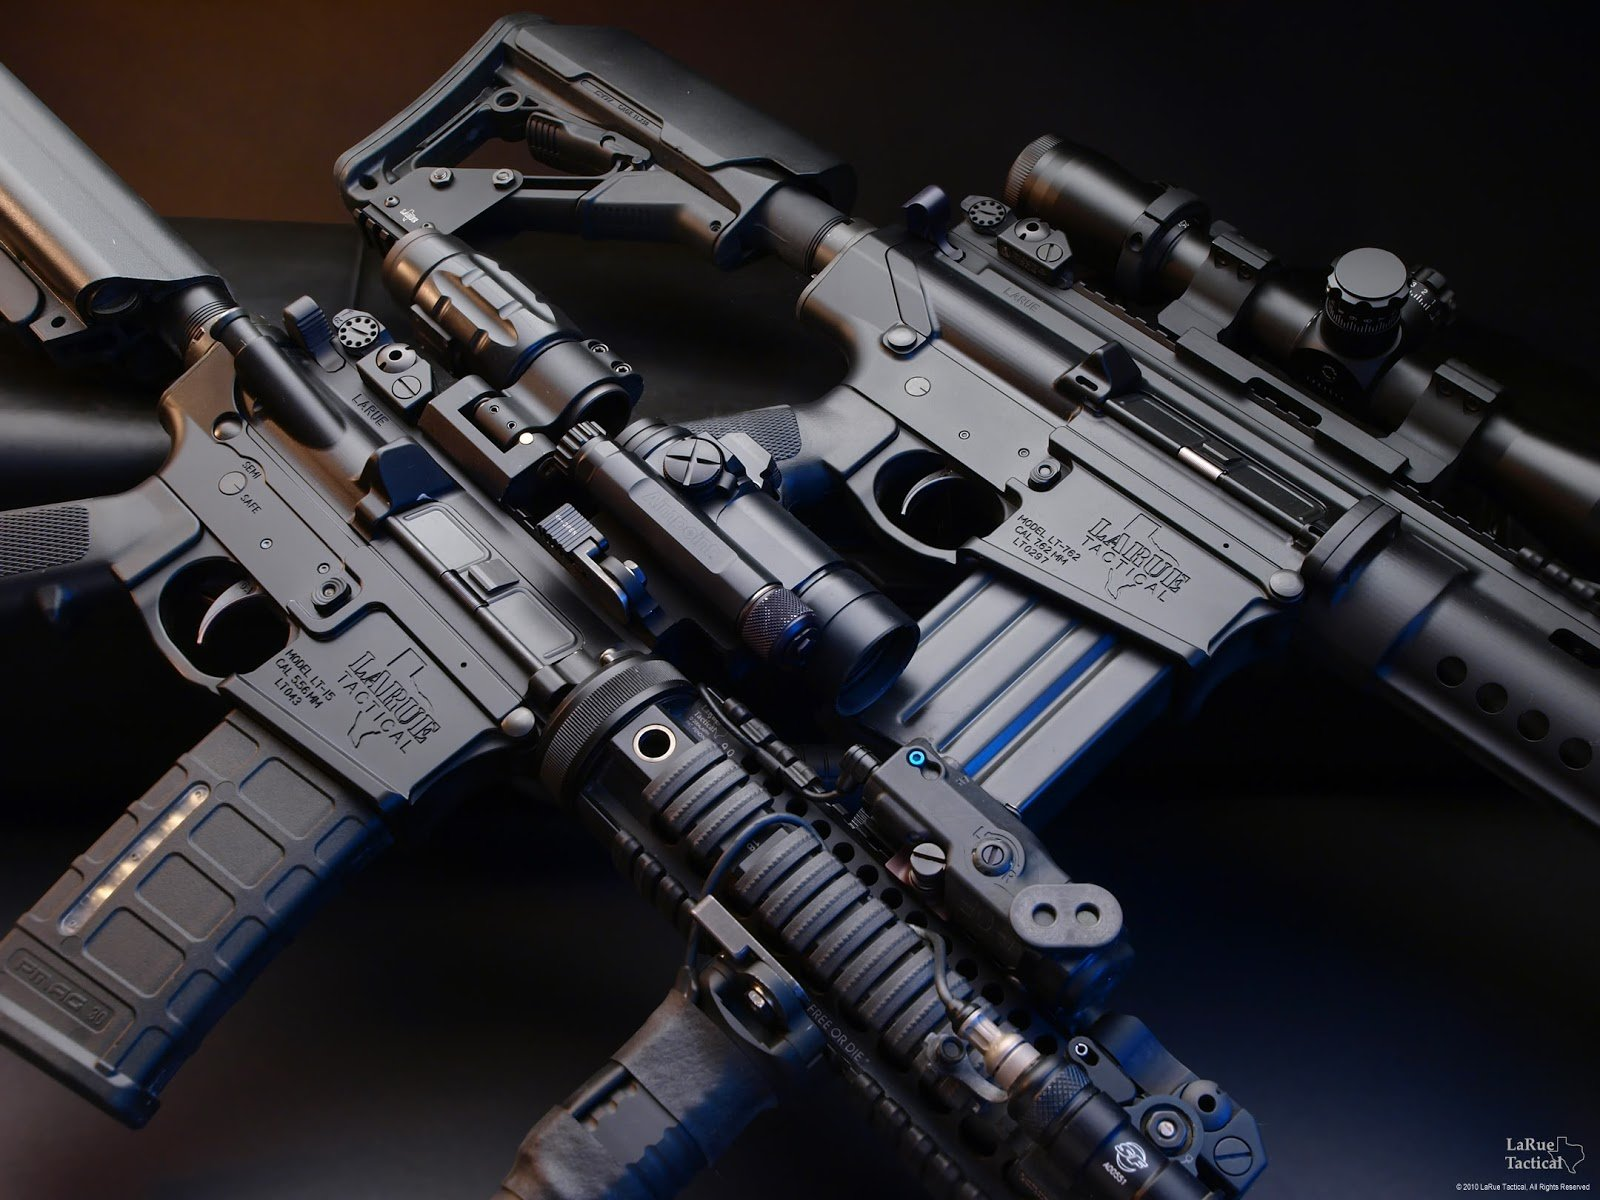 sniper rifle rifles larue tactical desktop 2160x1620 hd wallpaper 1600x1200